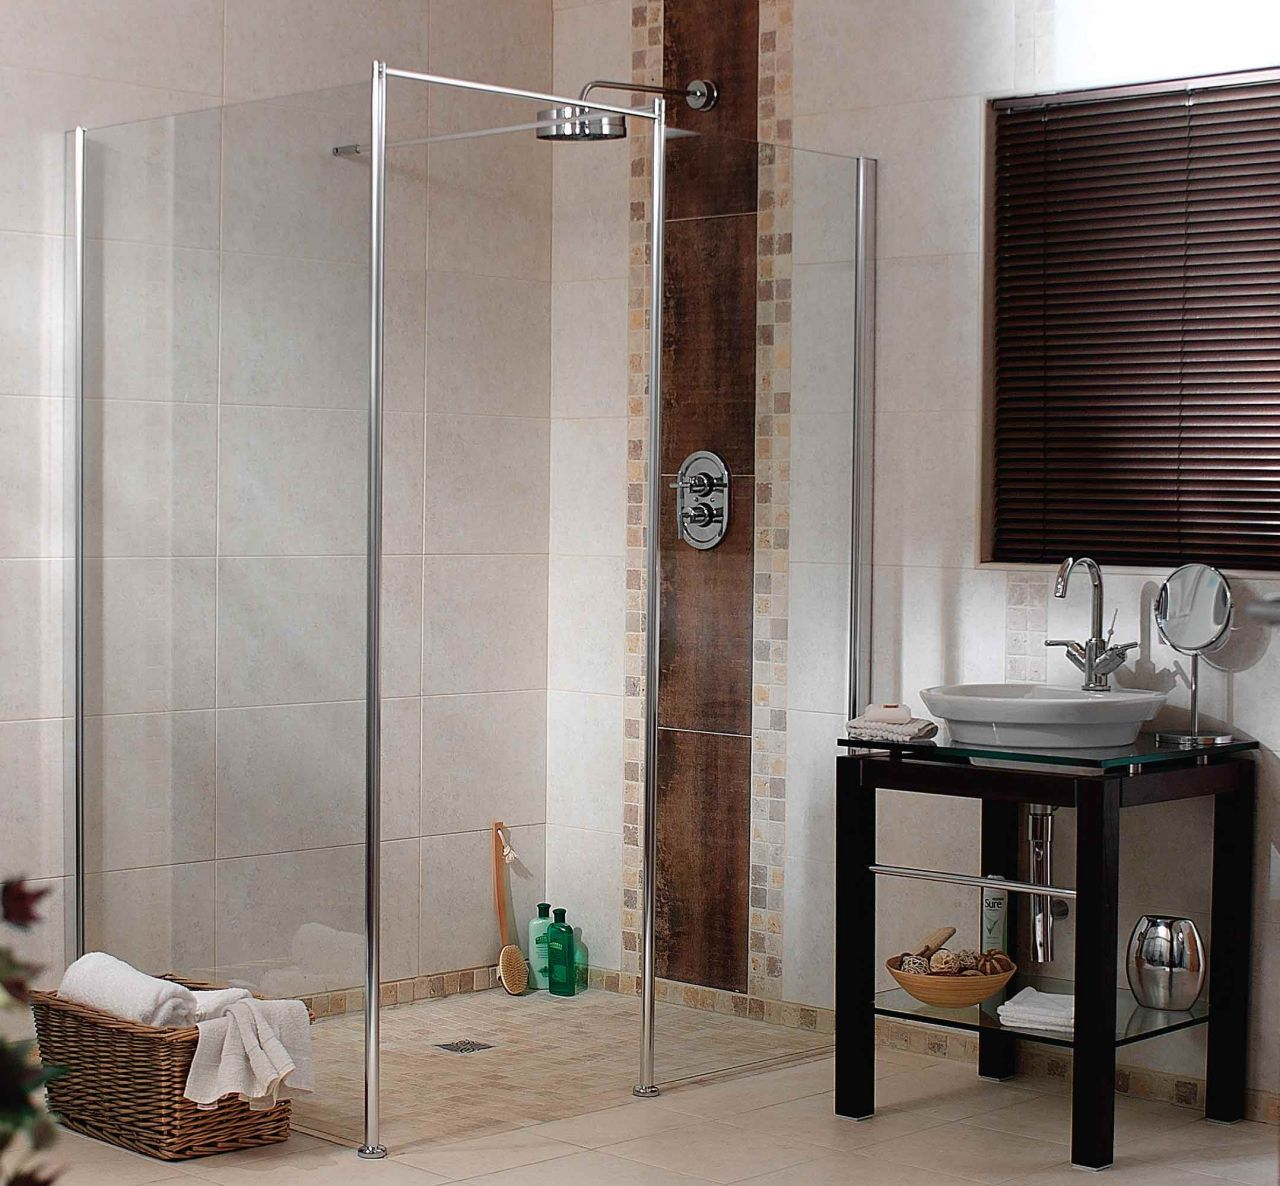 Folding Shower Bath Screen 5 Shower Base Ideas For A Custom Home Or Remodeling Project